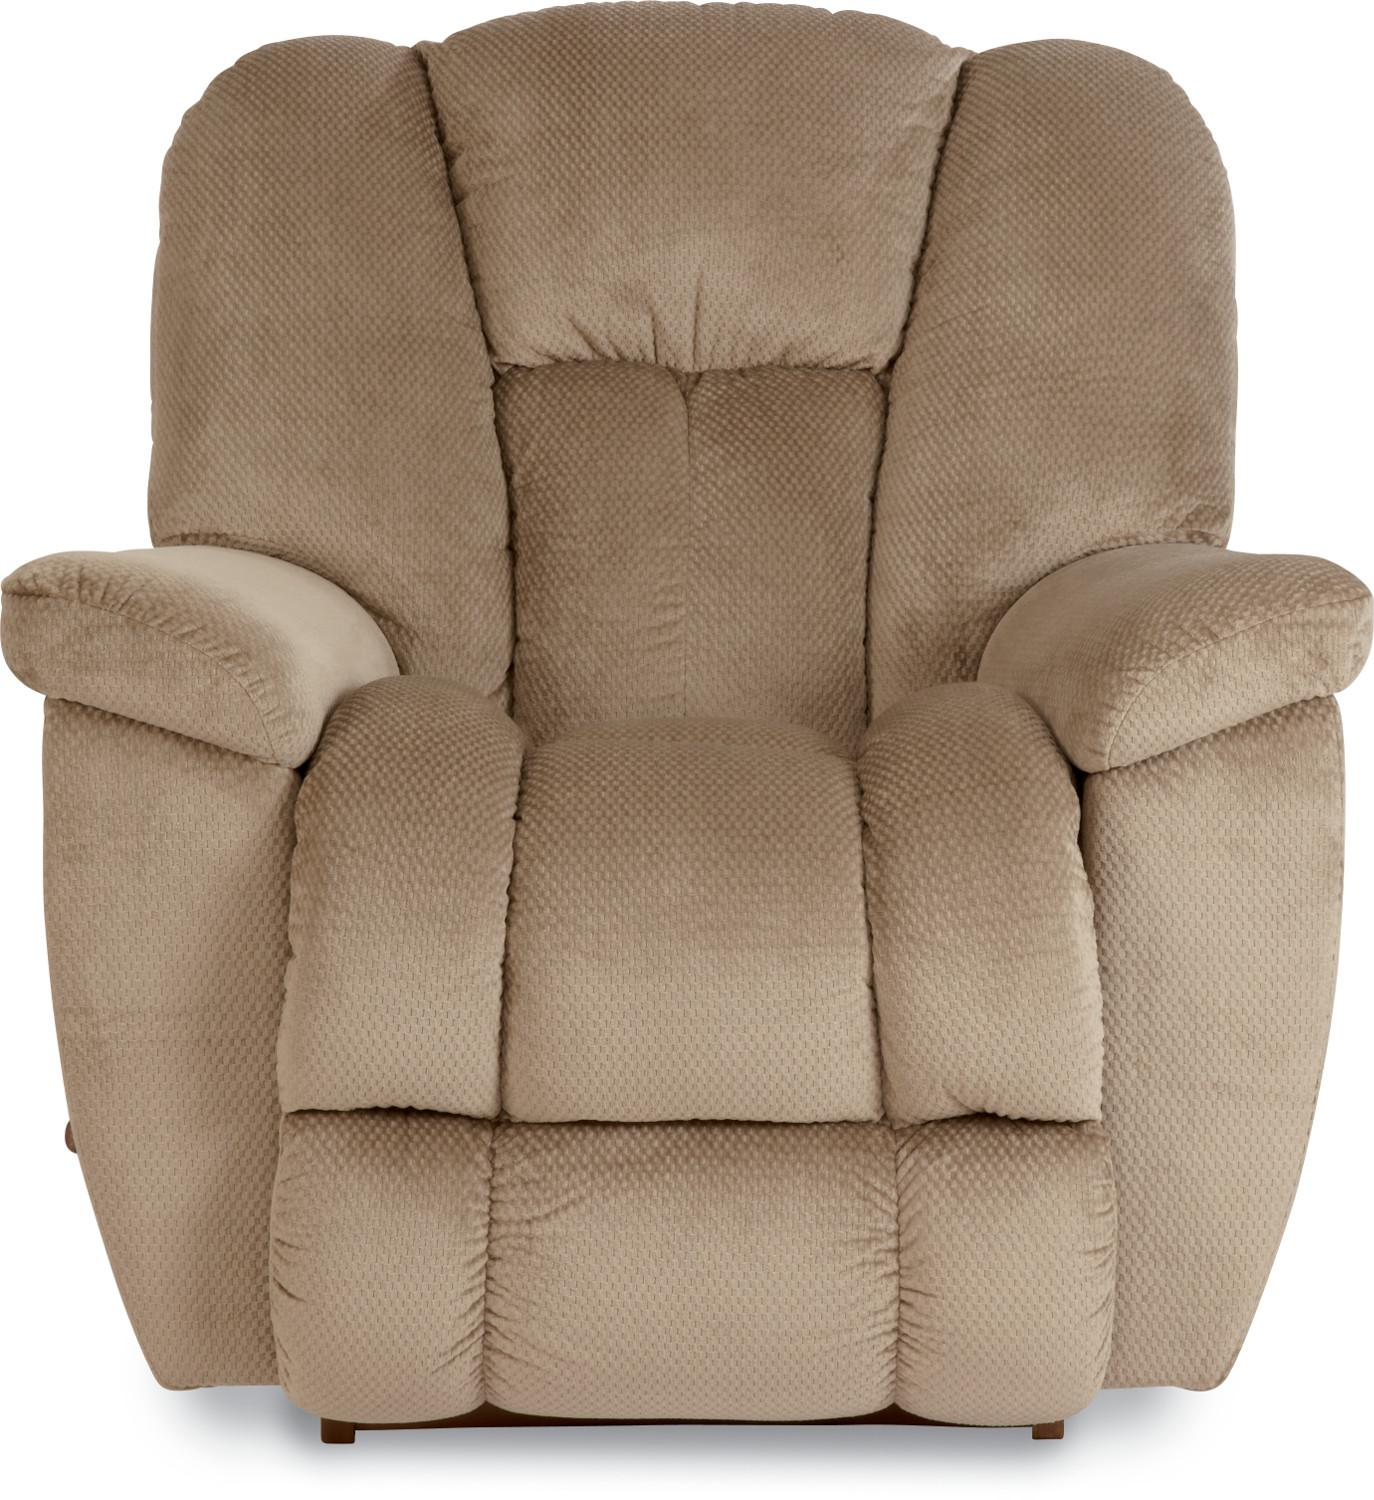 Maverick Rocker Recliner by La-Z-Boy at VanDrie Home Furnishings